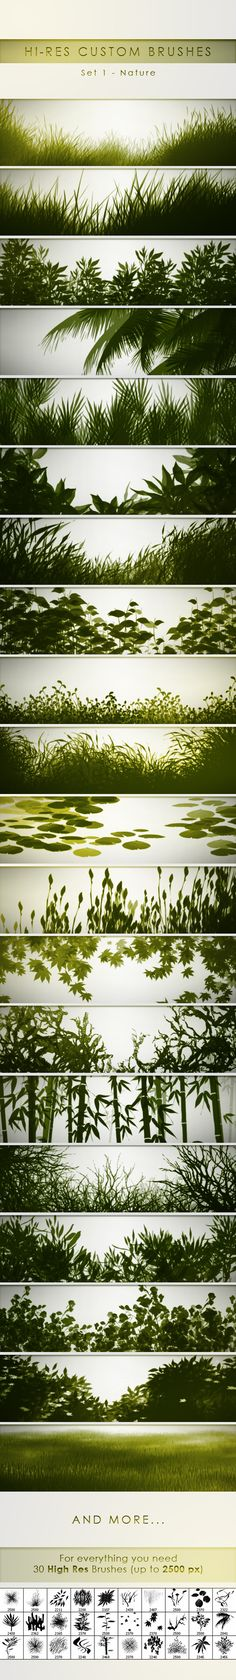 30 Hi-Res Custom Brushes - Nature - Flourishes Brushes www.lab333.com www.facebook.com/pages/LAB-STYLE/585086788169863 http://www.lab333style.com https://instagram.com/lab_333 http://lablikes.tumblr.com www.pinterest.com/labstyle